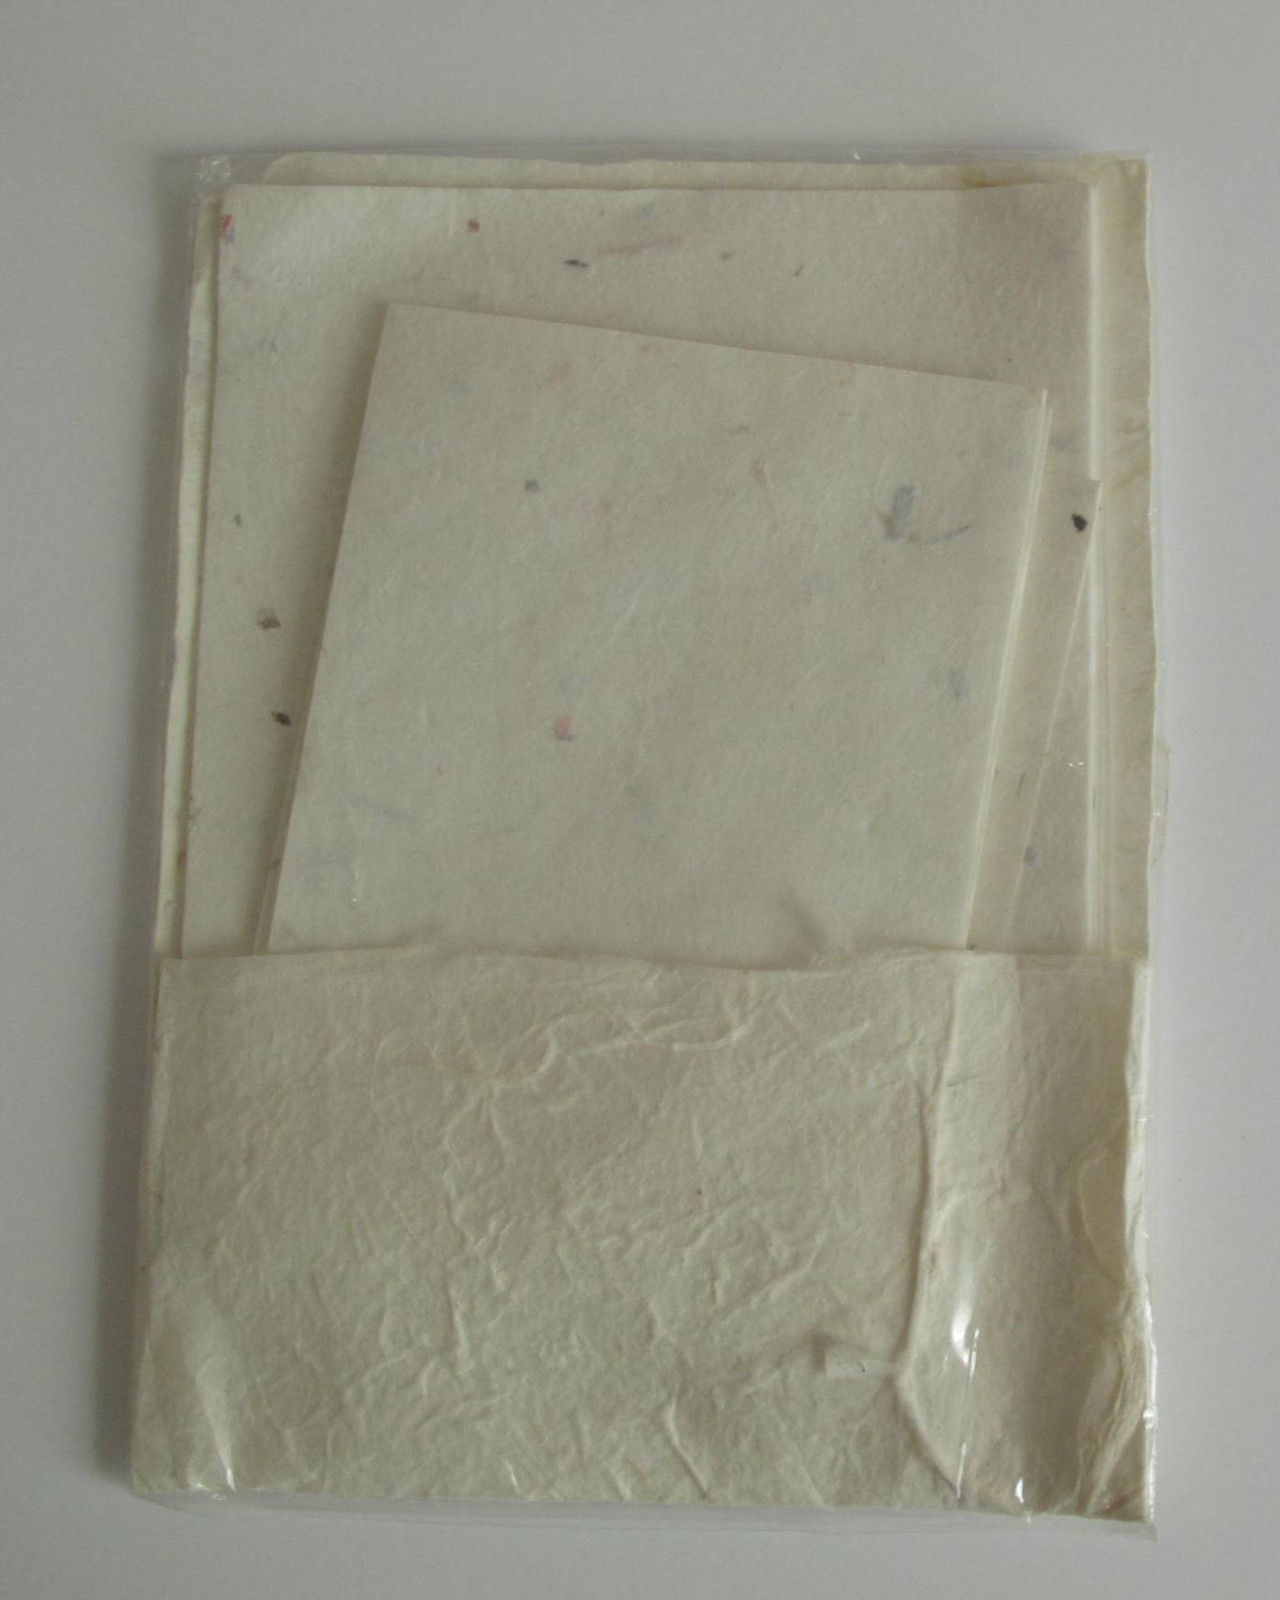 Primary image for Handcrafted Mulberry Paper and Envelopes, 9 sheets and 6 envelopes